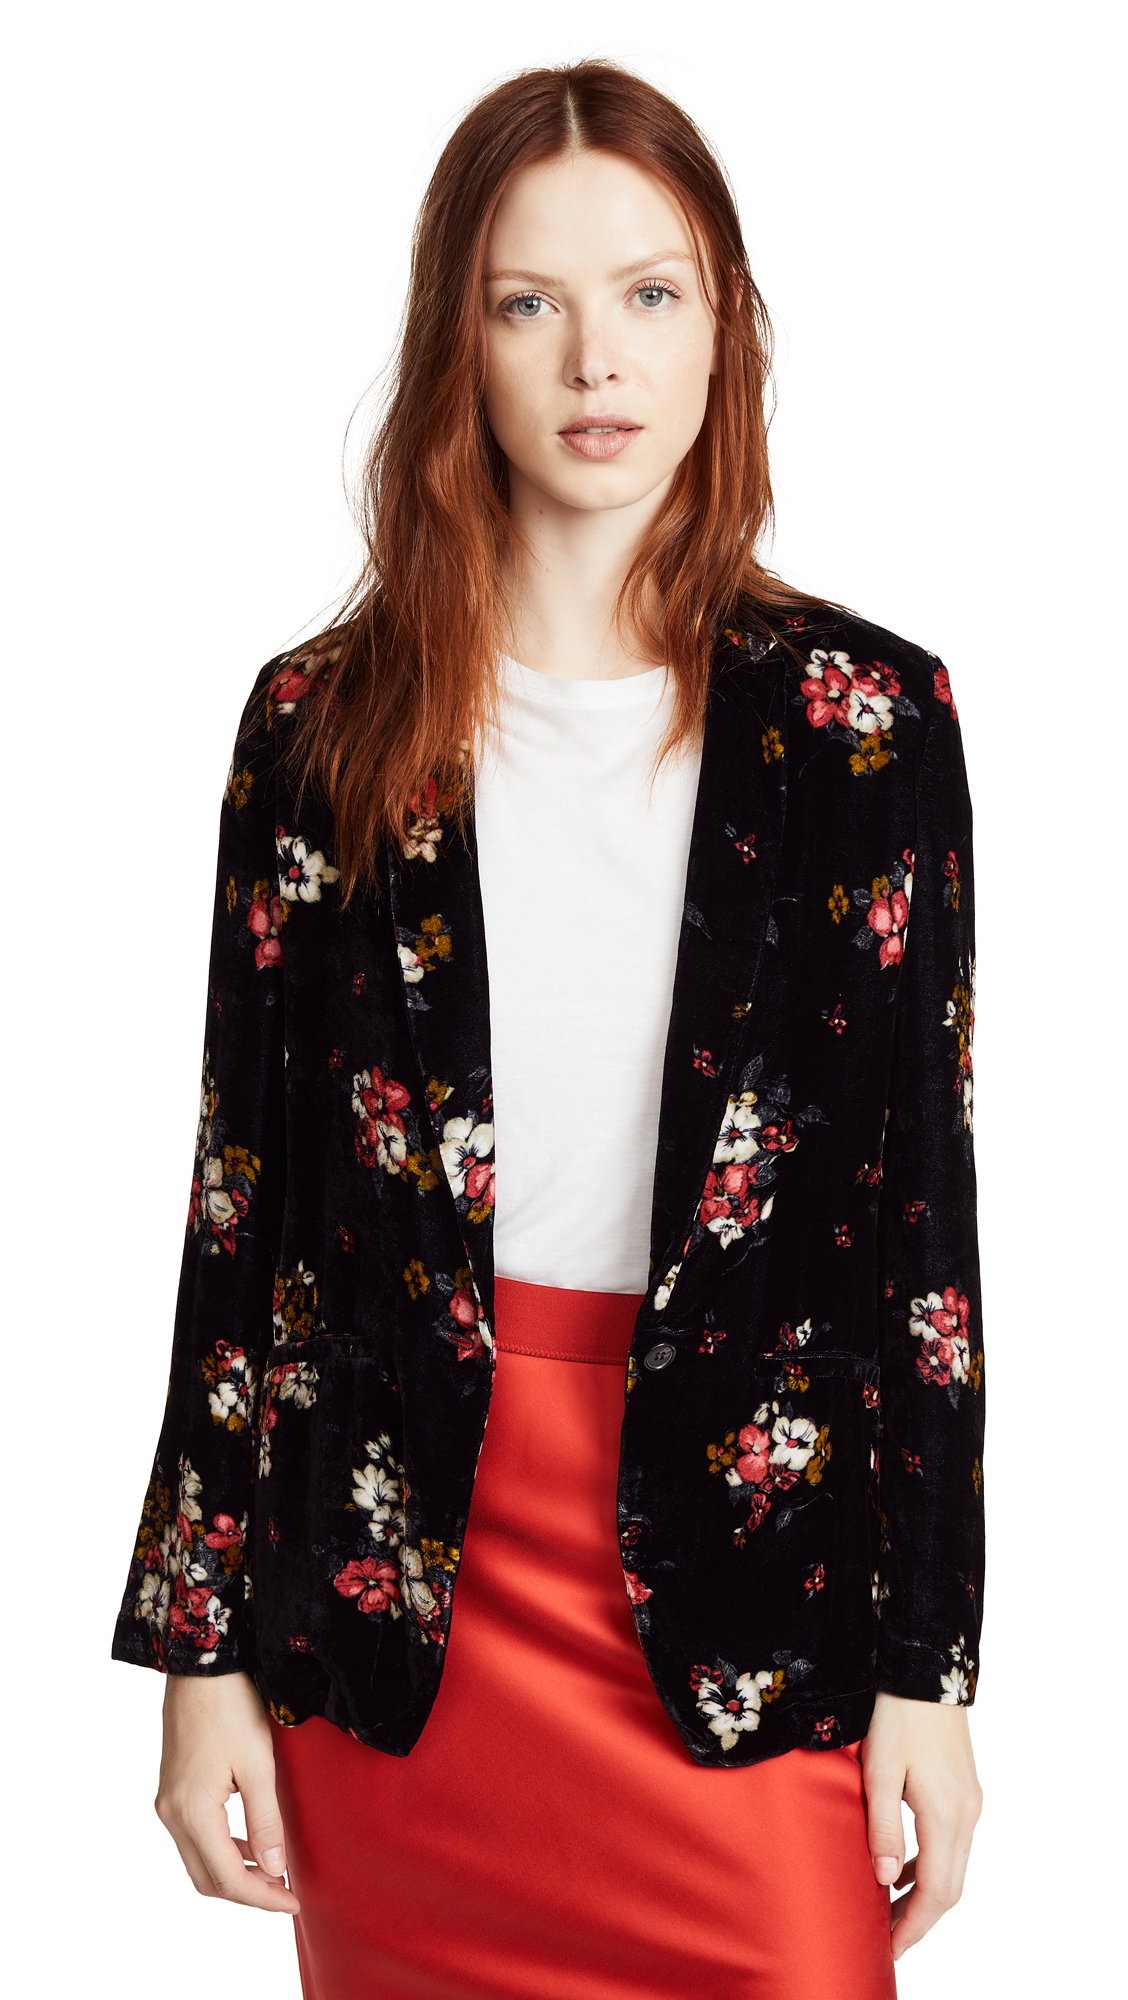 GIADA FORTE Garden Jacket in Nero